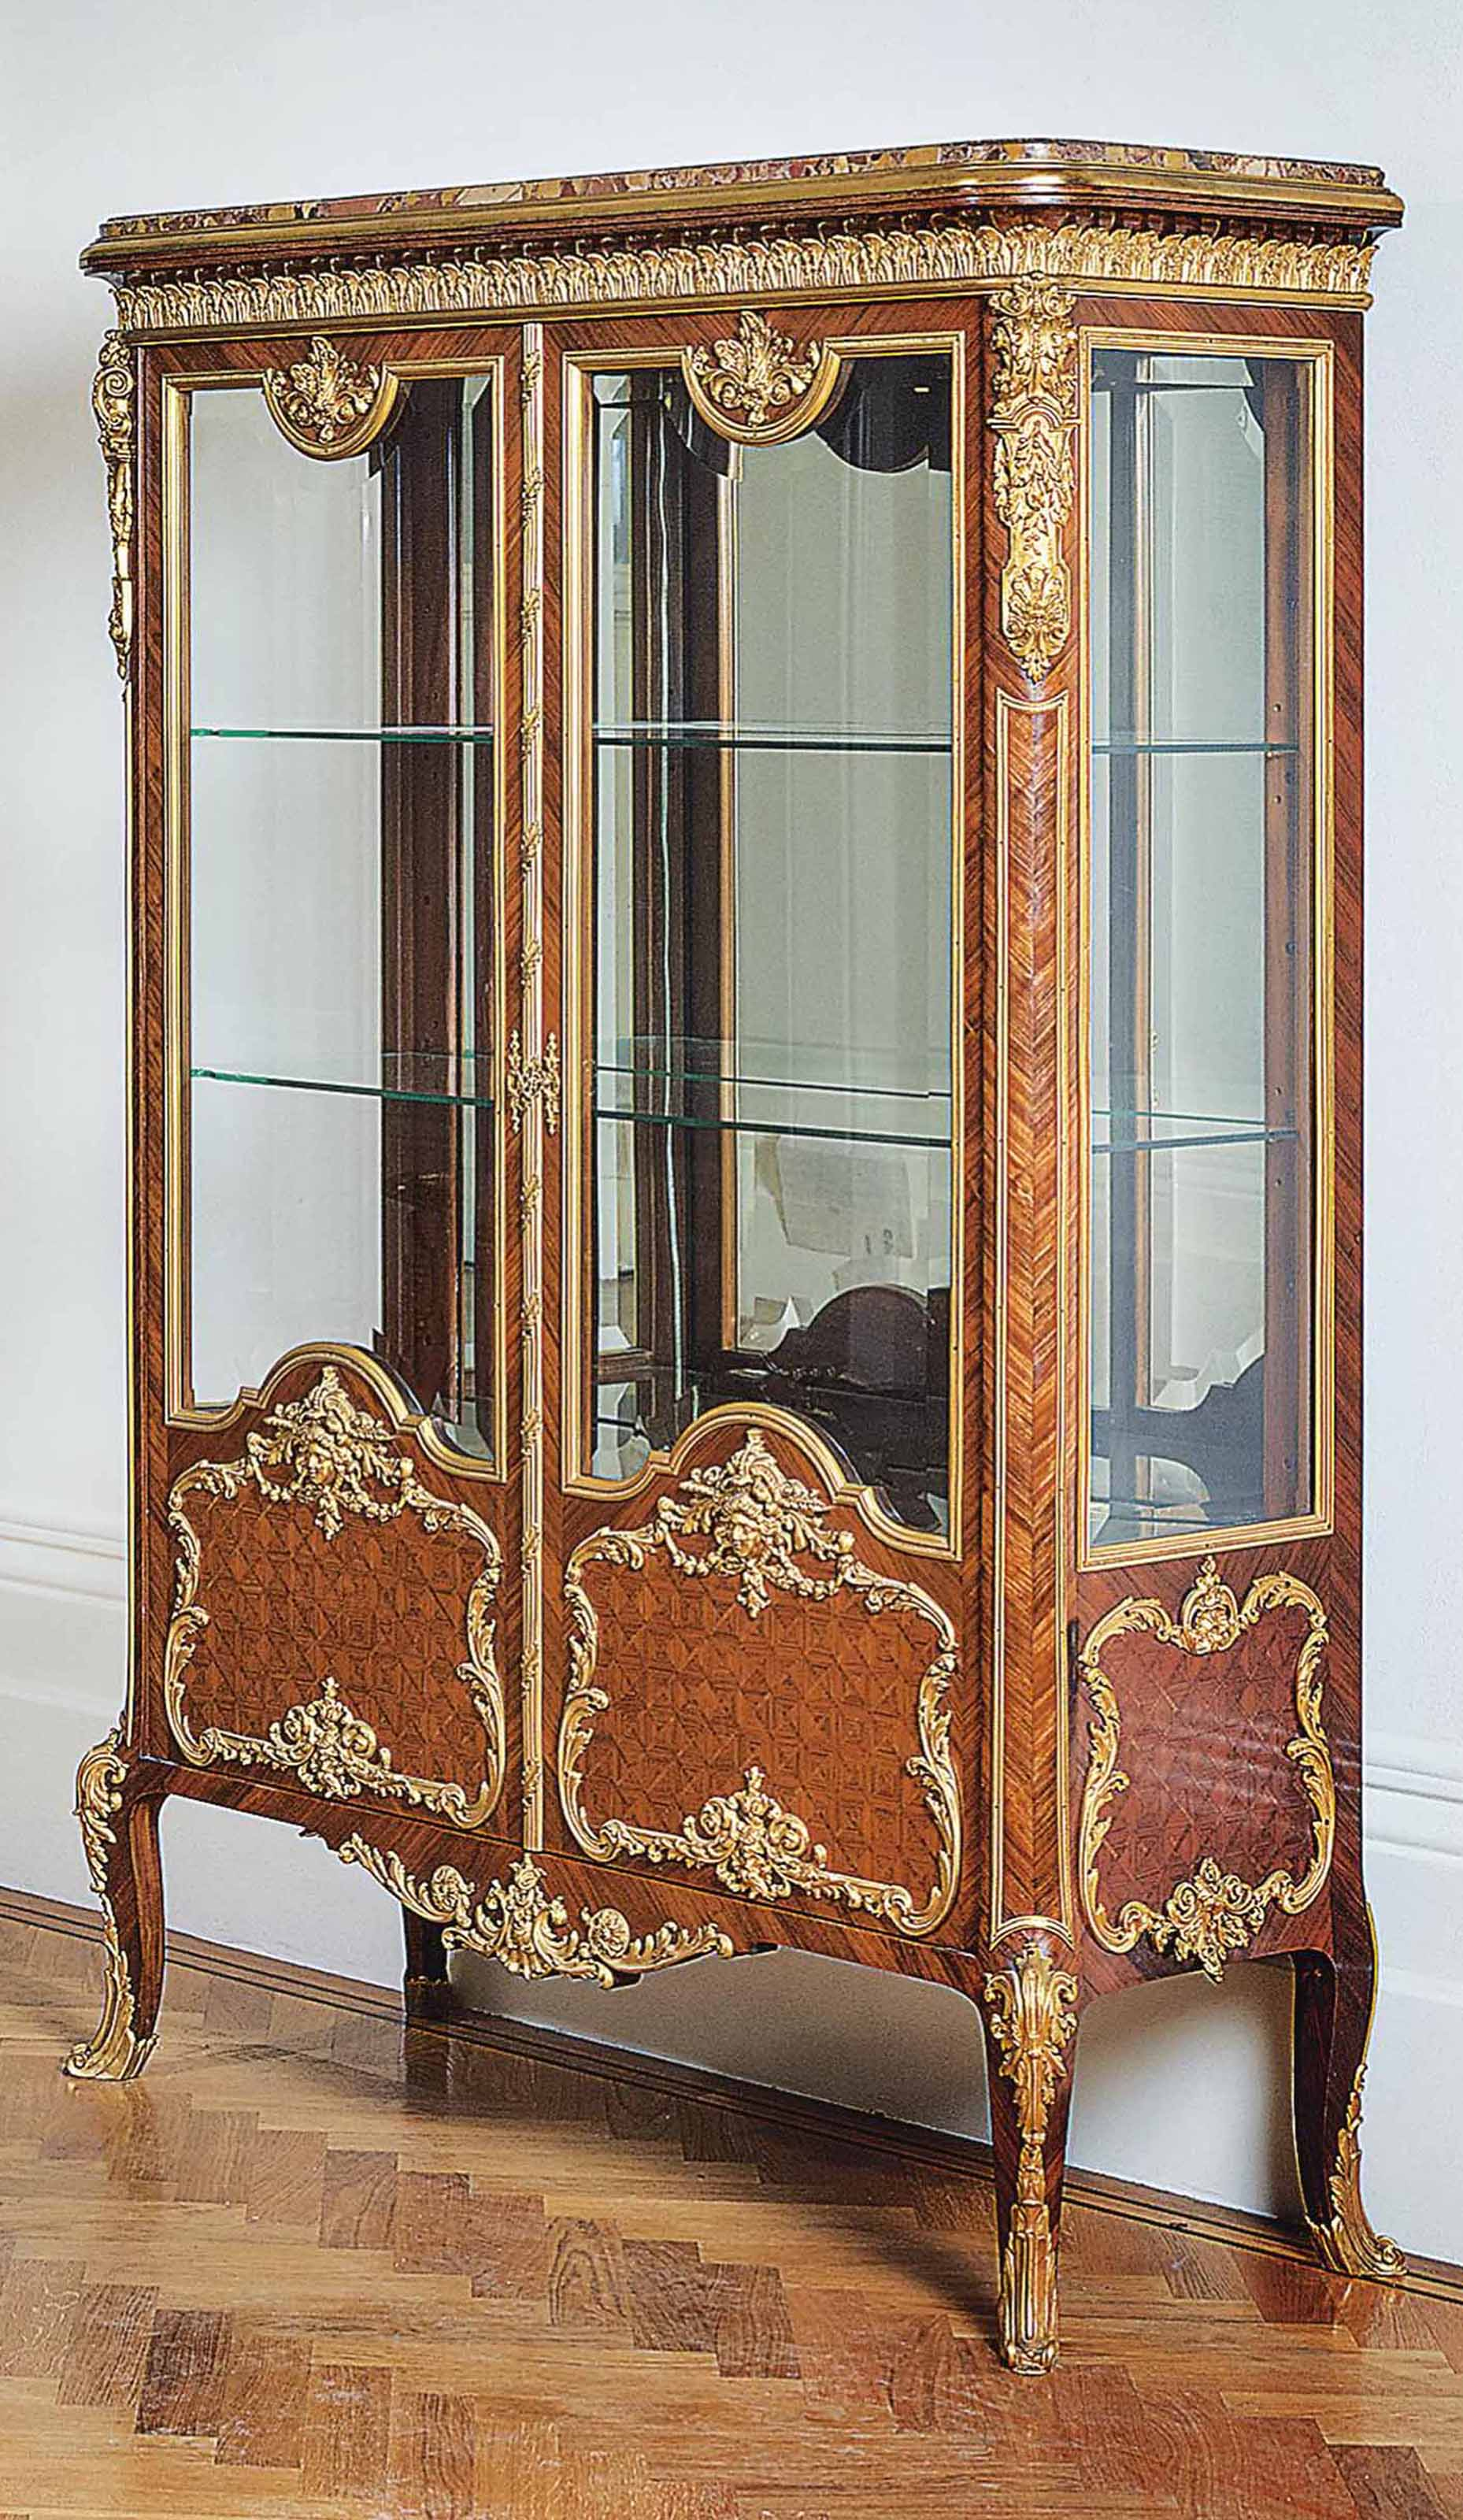 A FRENCH ORMOLU-MOUNTED KINGWOOD, BOIS SATINE AND PARQUETRY VITRINE CABINET